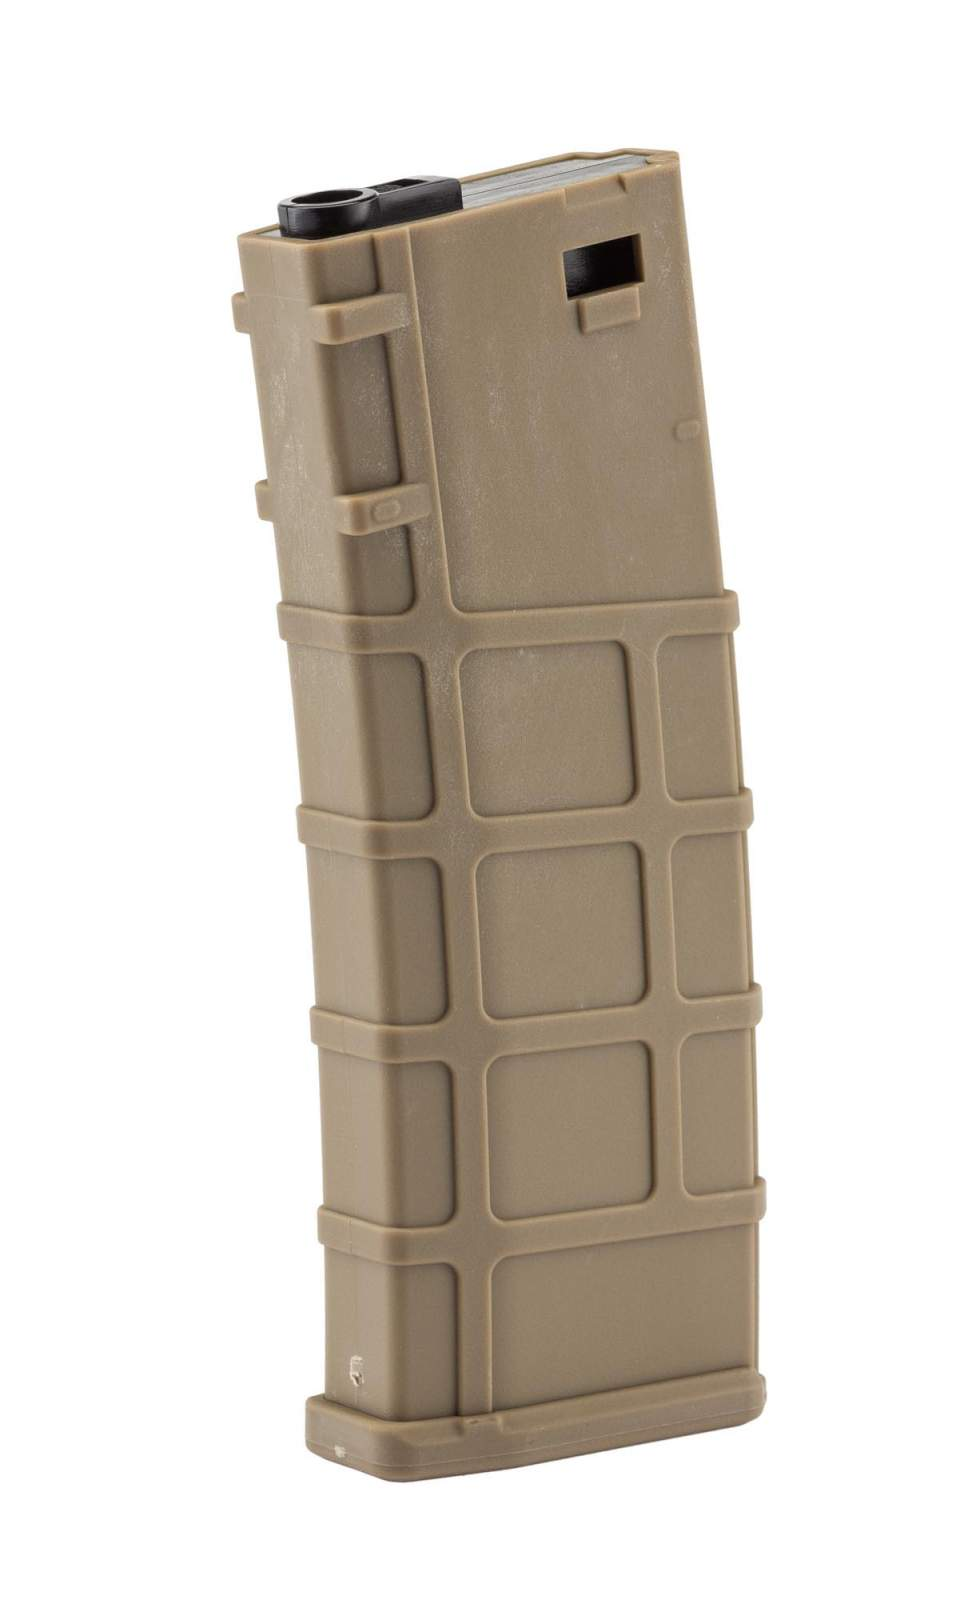 Photo Airsoft Magazine Real Cap 30 rds for M4 AEG Polymer Tan - Pack of 6 pcs